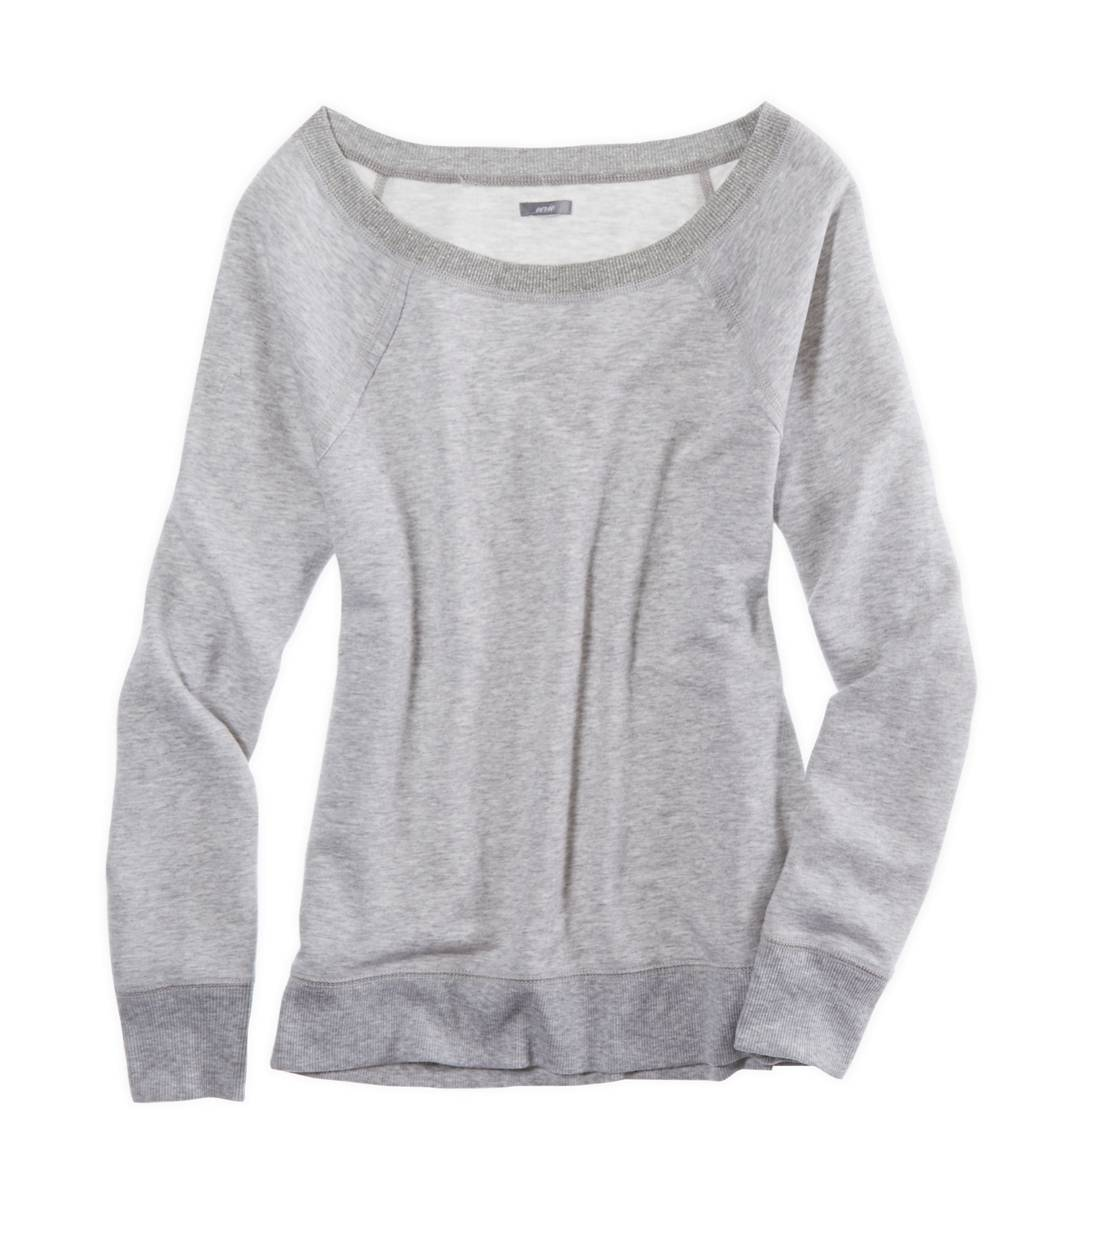 Medium Heather Grey Aerie Sparkle Crew Sweatshirt